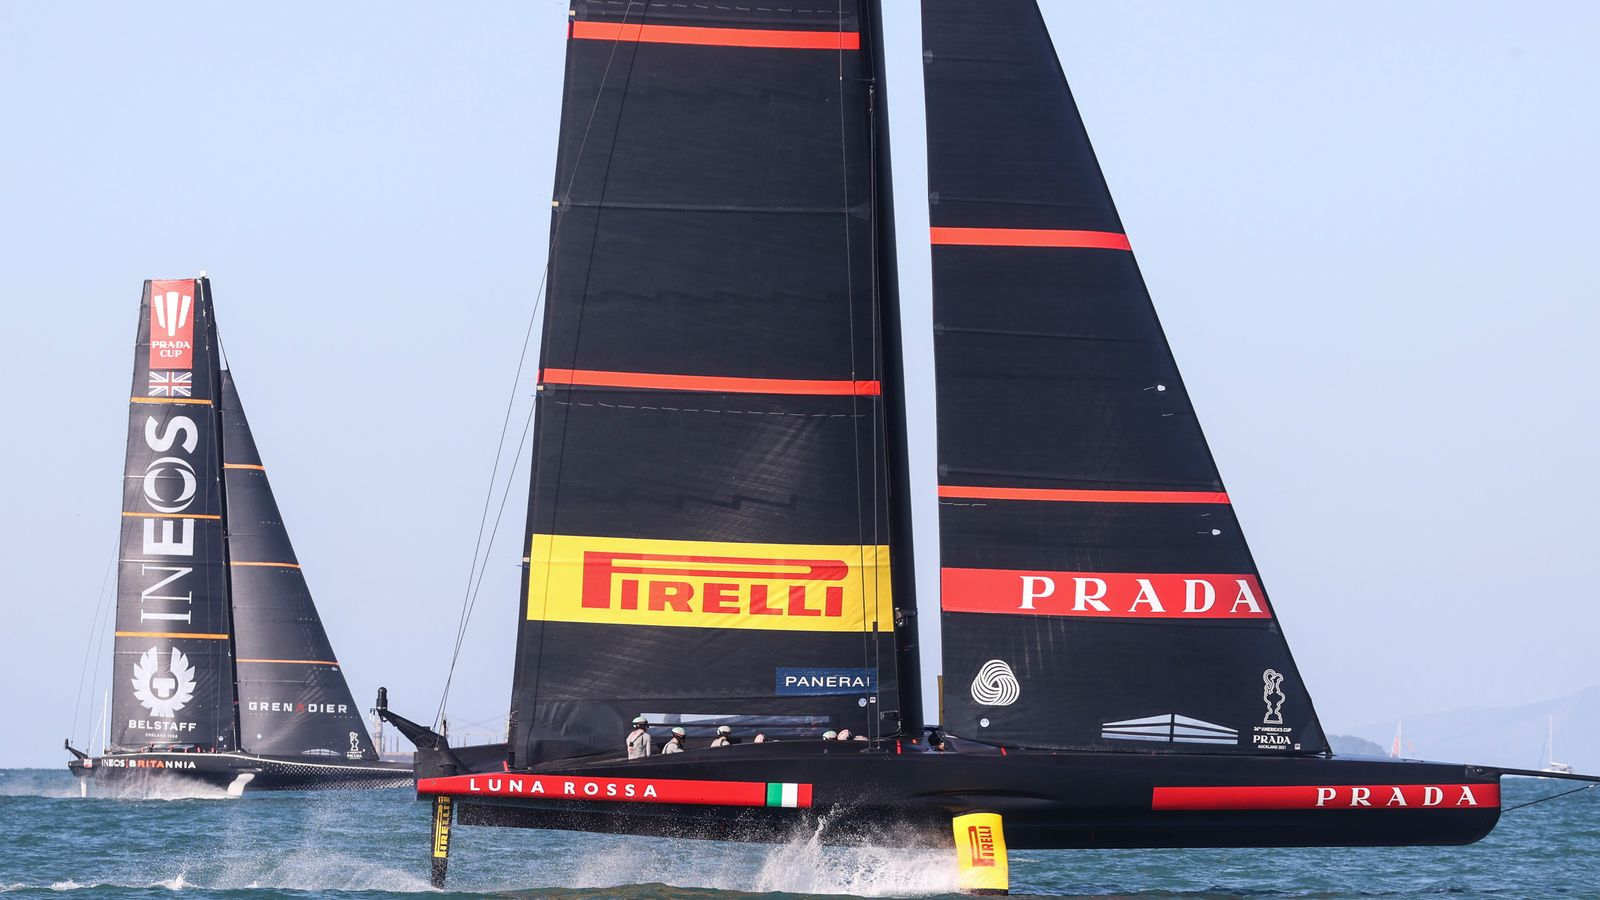 36th America's Cup: First two races set for March 10 as Auckland coronavirus lockdown eased